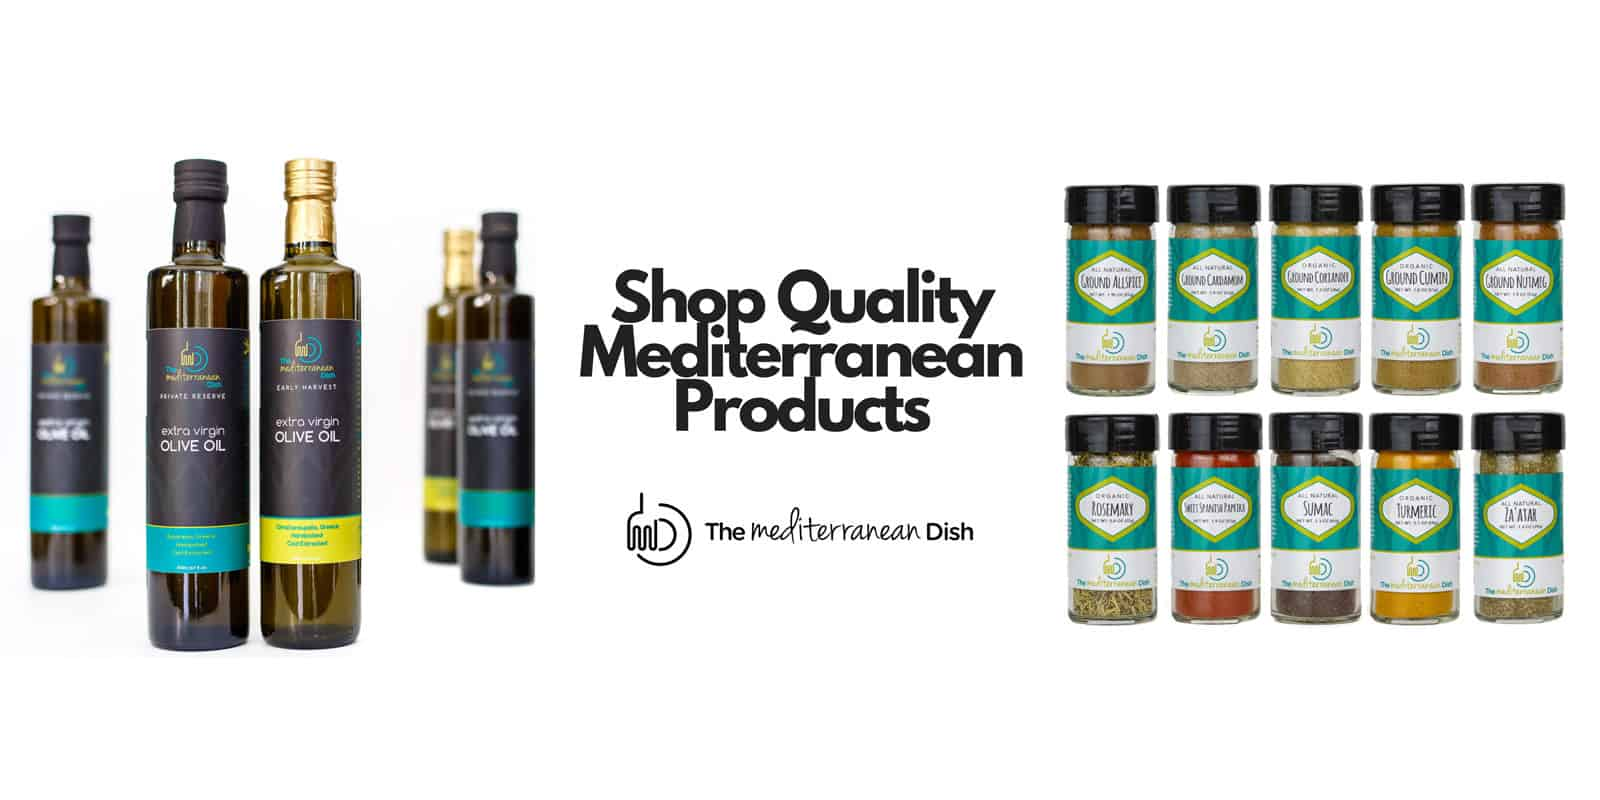 Mediterranean Dish's olive oils and spices